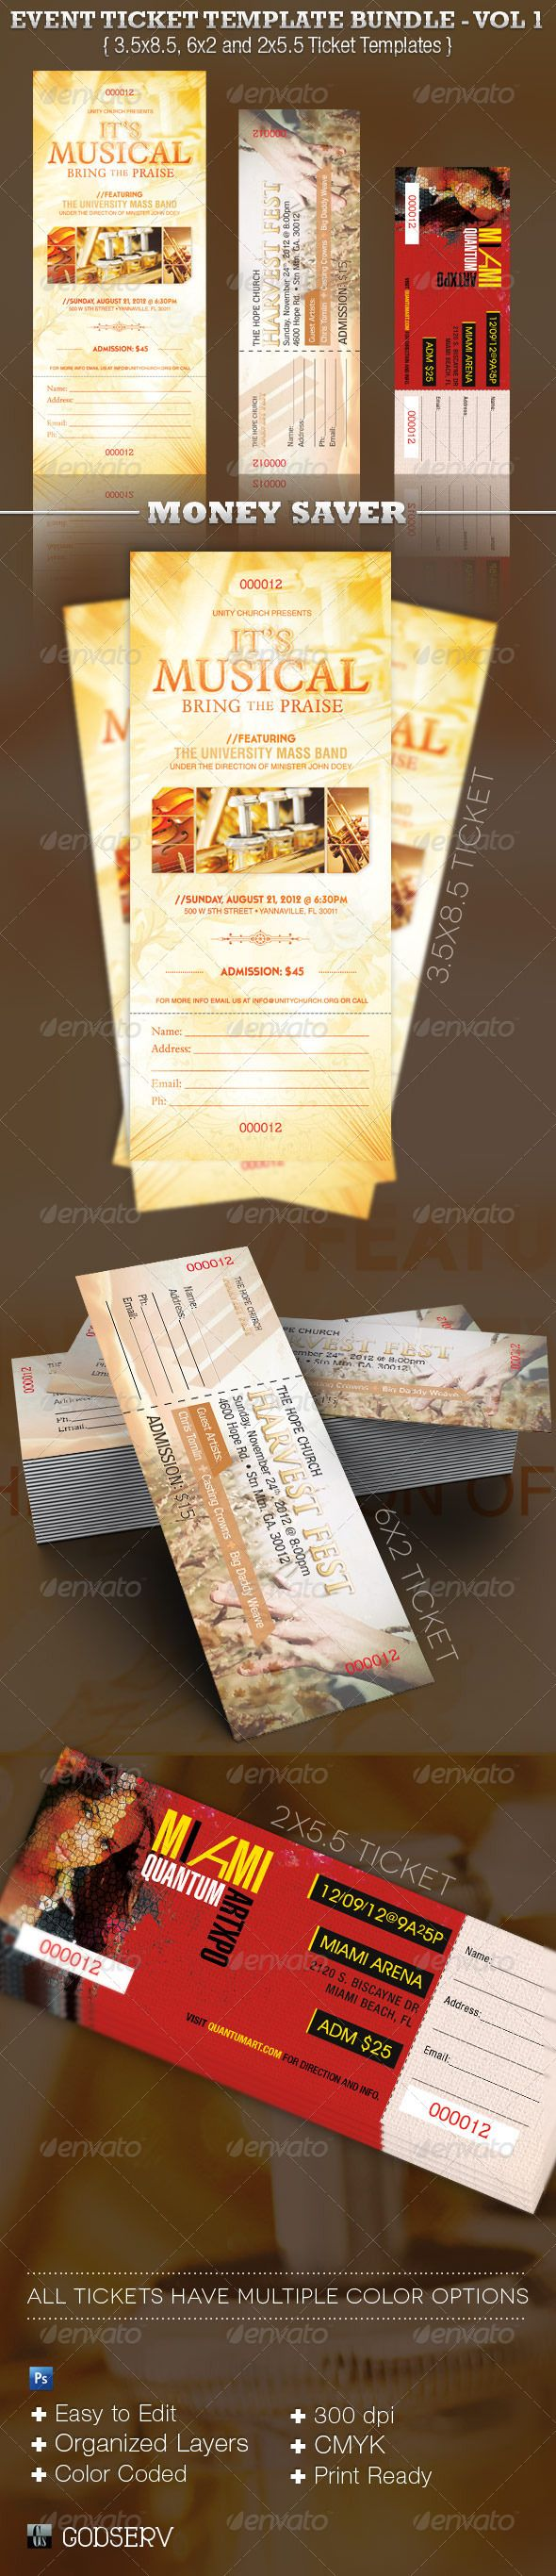 Event Ticket Template Bundle Vol 1  Free Printable Tickets For Events